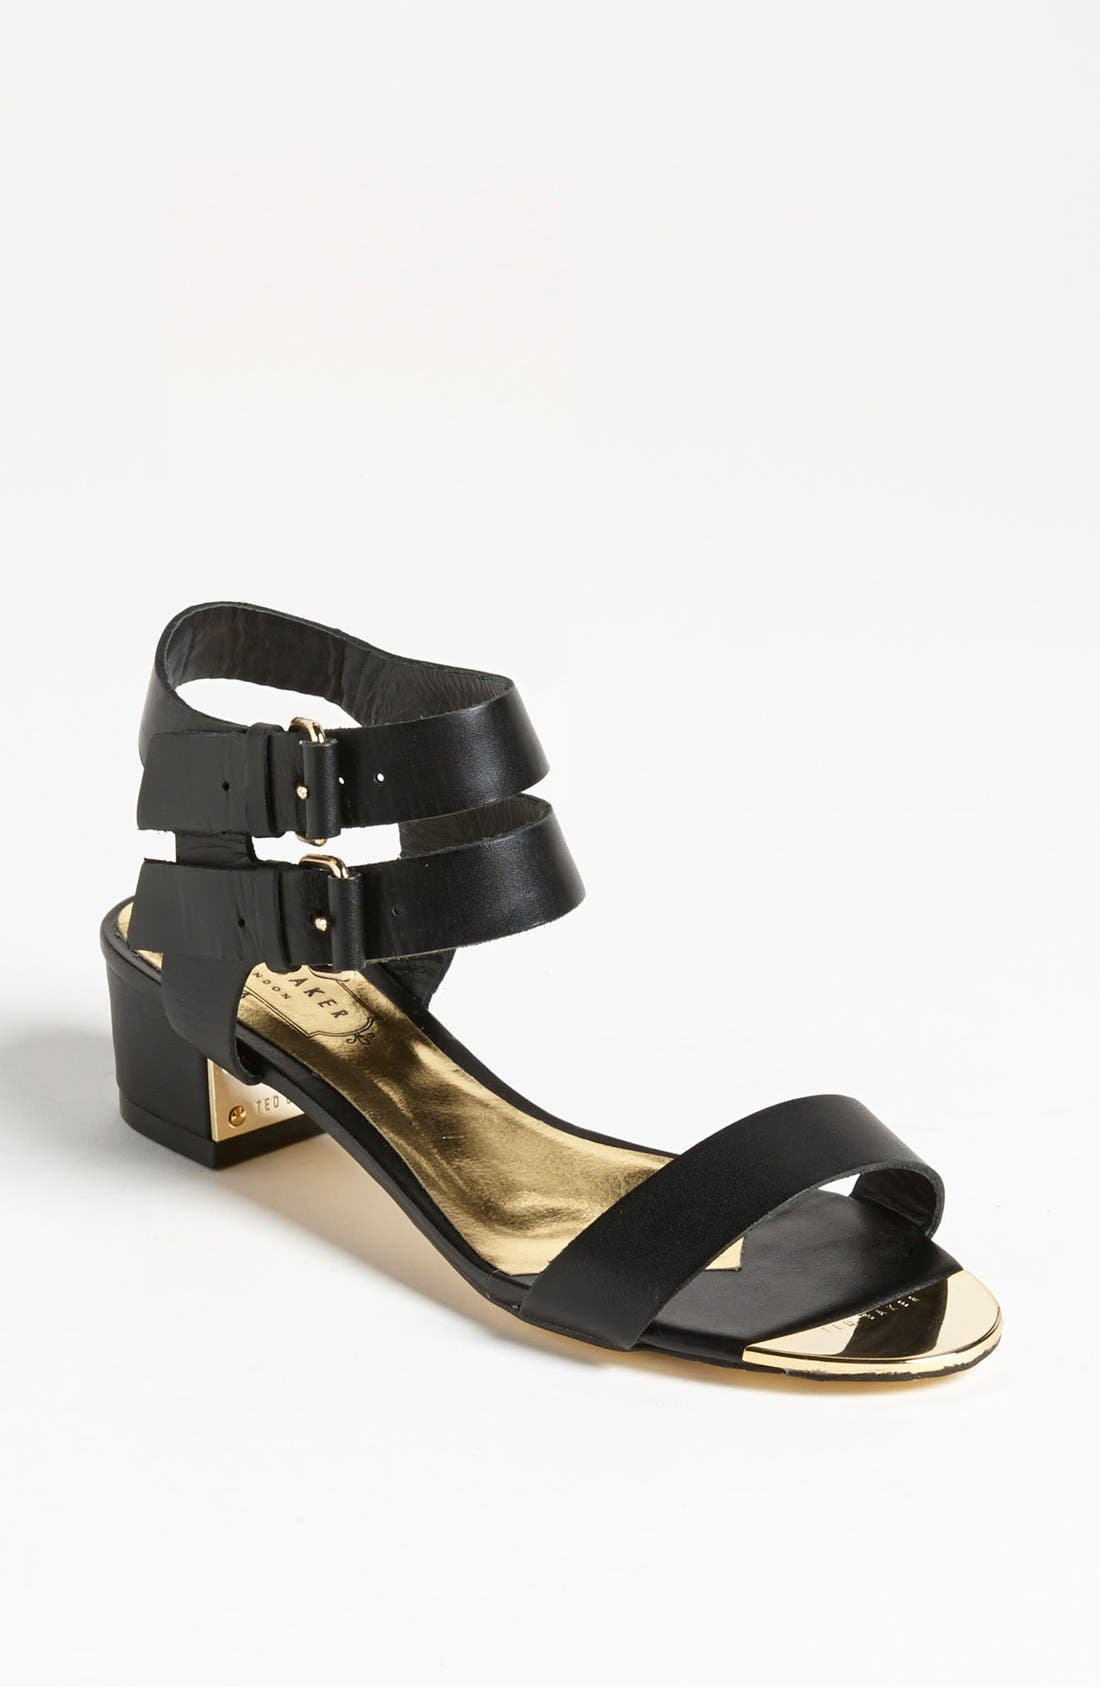 Alternate Image 1 Selected - Ted Baker London 'Dreesa' Sandal